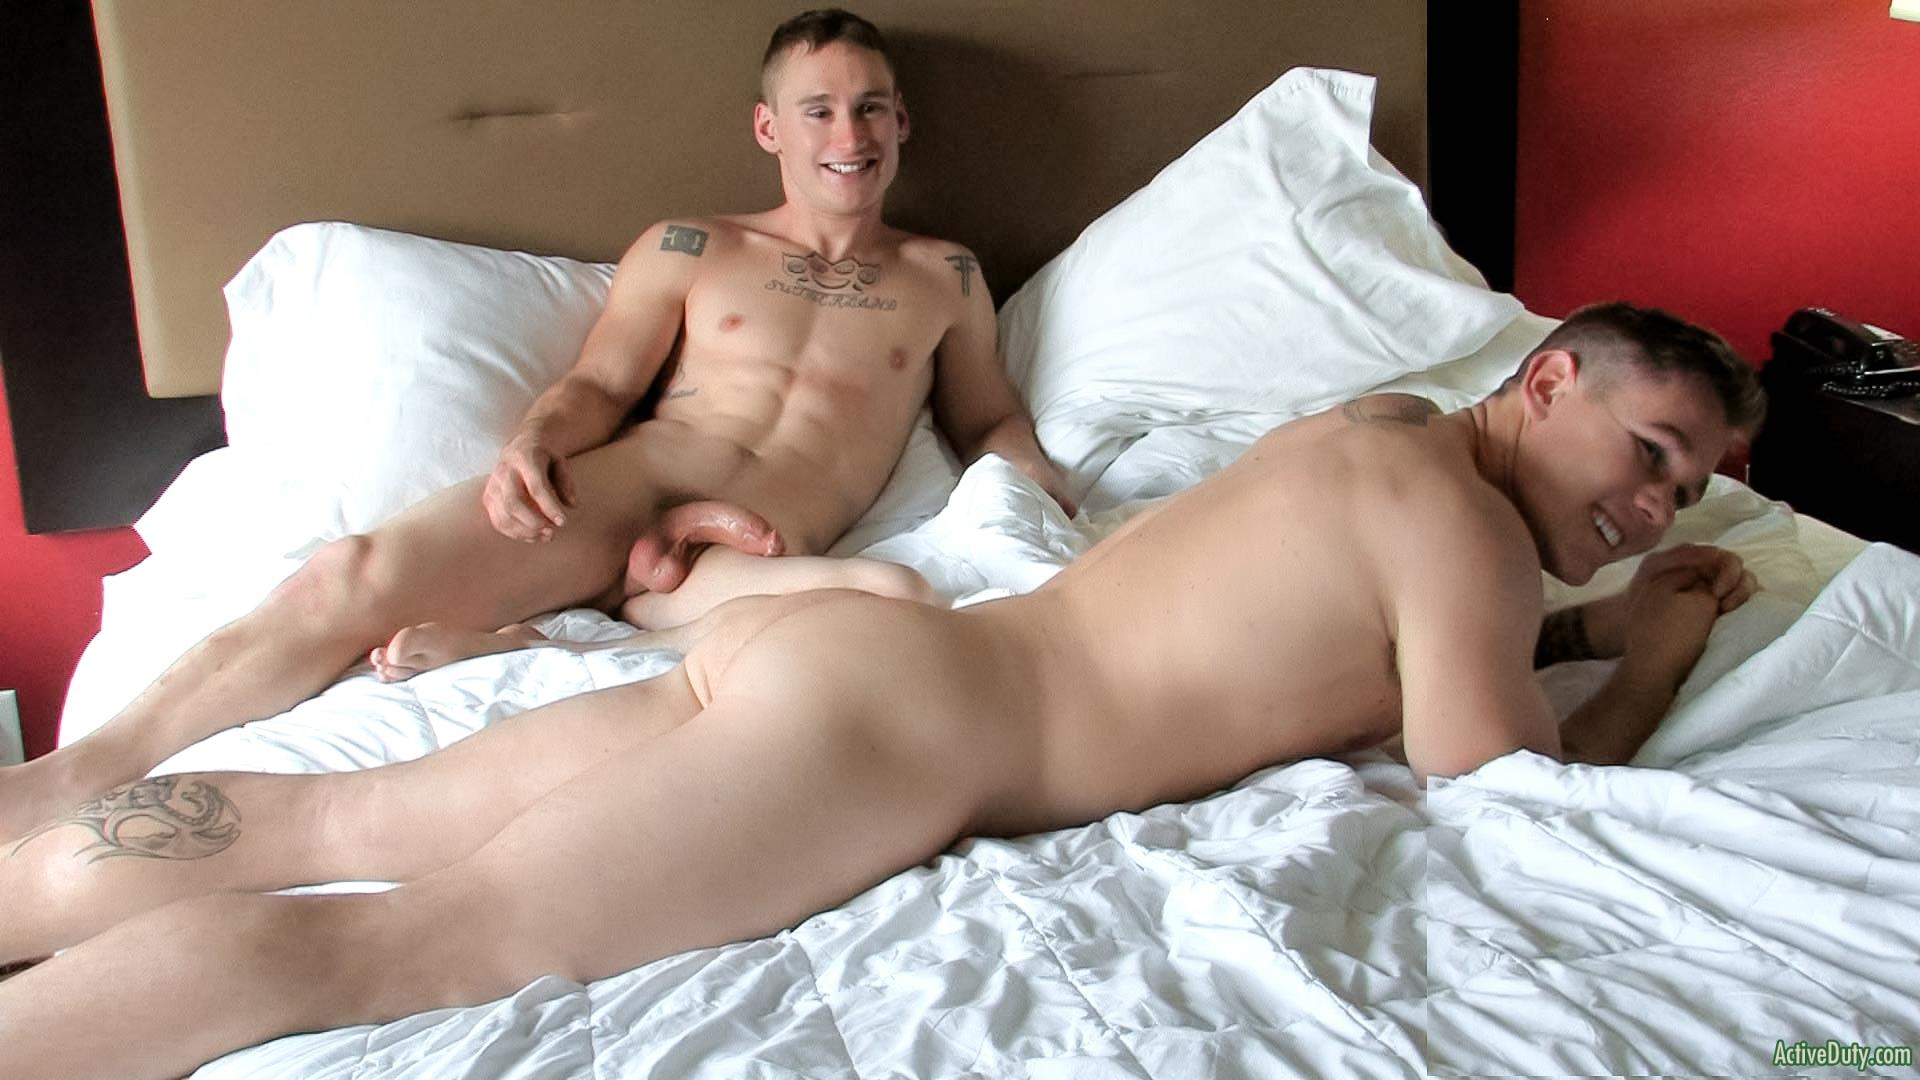 Active Duty Randy and Tim Straight Army Guys Fucking Muscle Cock Amateur Gay Porn 15 Straight Muscle Army Guy Takes A Big Cock Up The Ass For The First Time